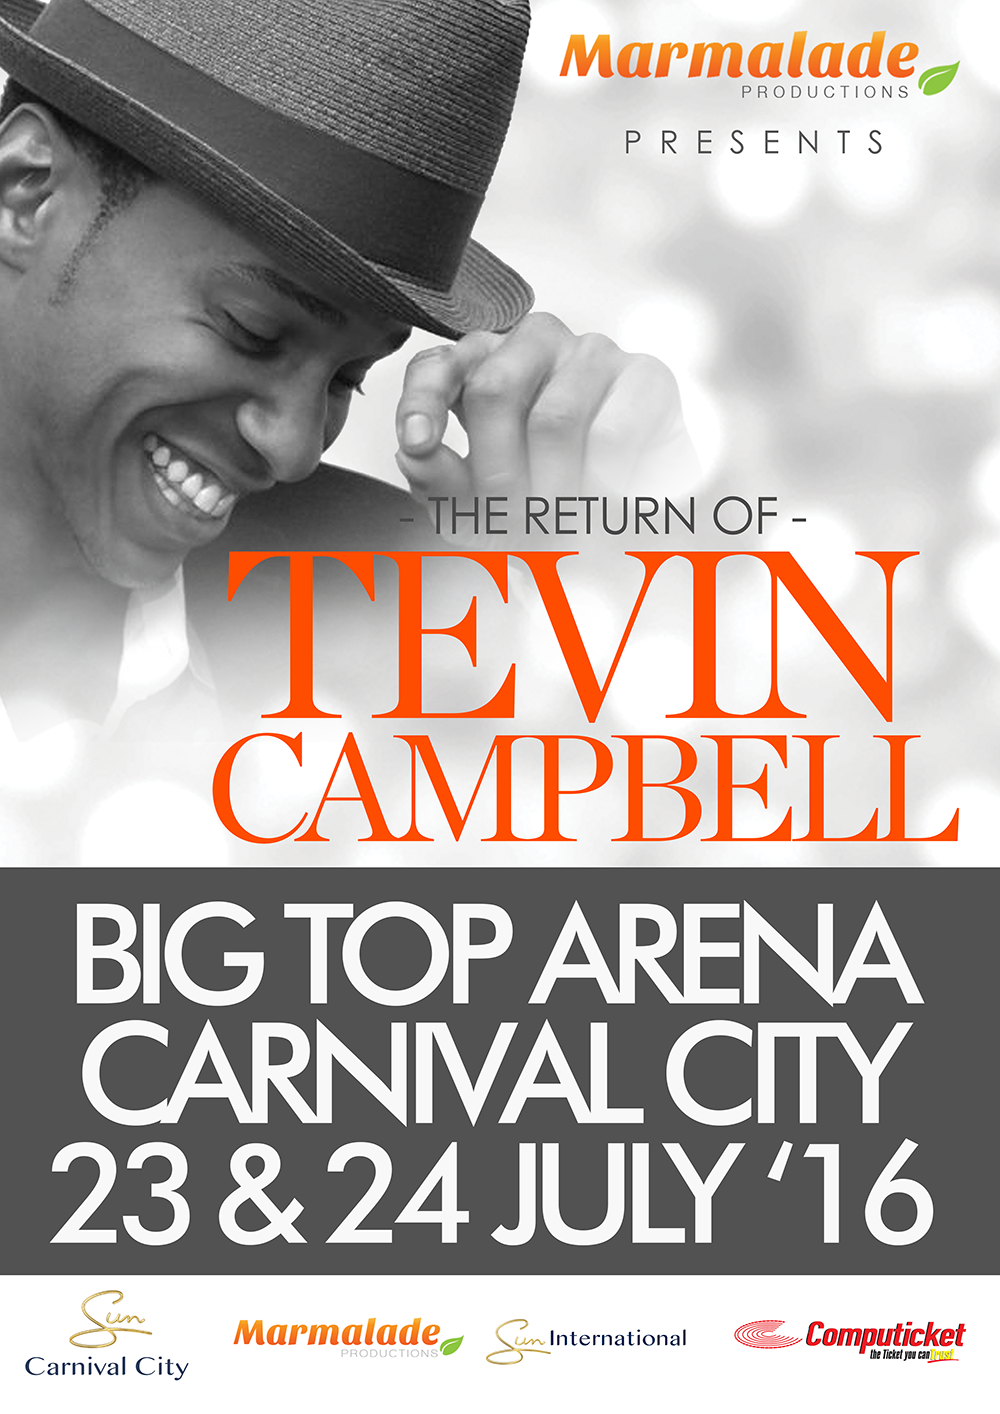 tevin_carnival_city_poster.png